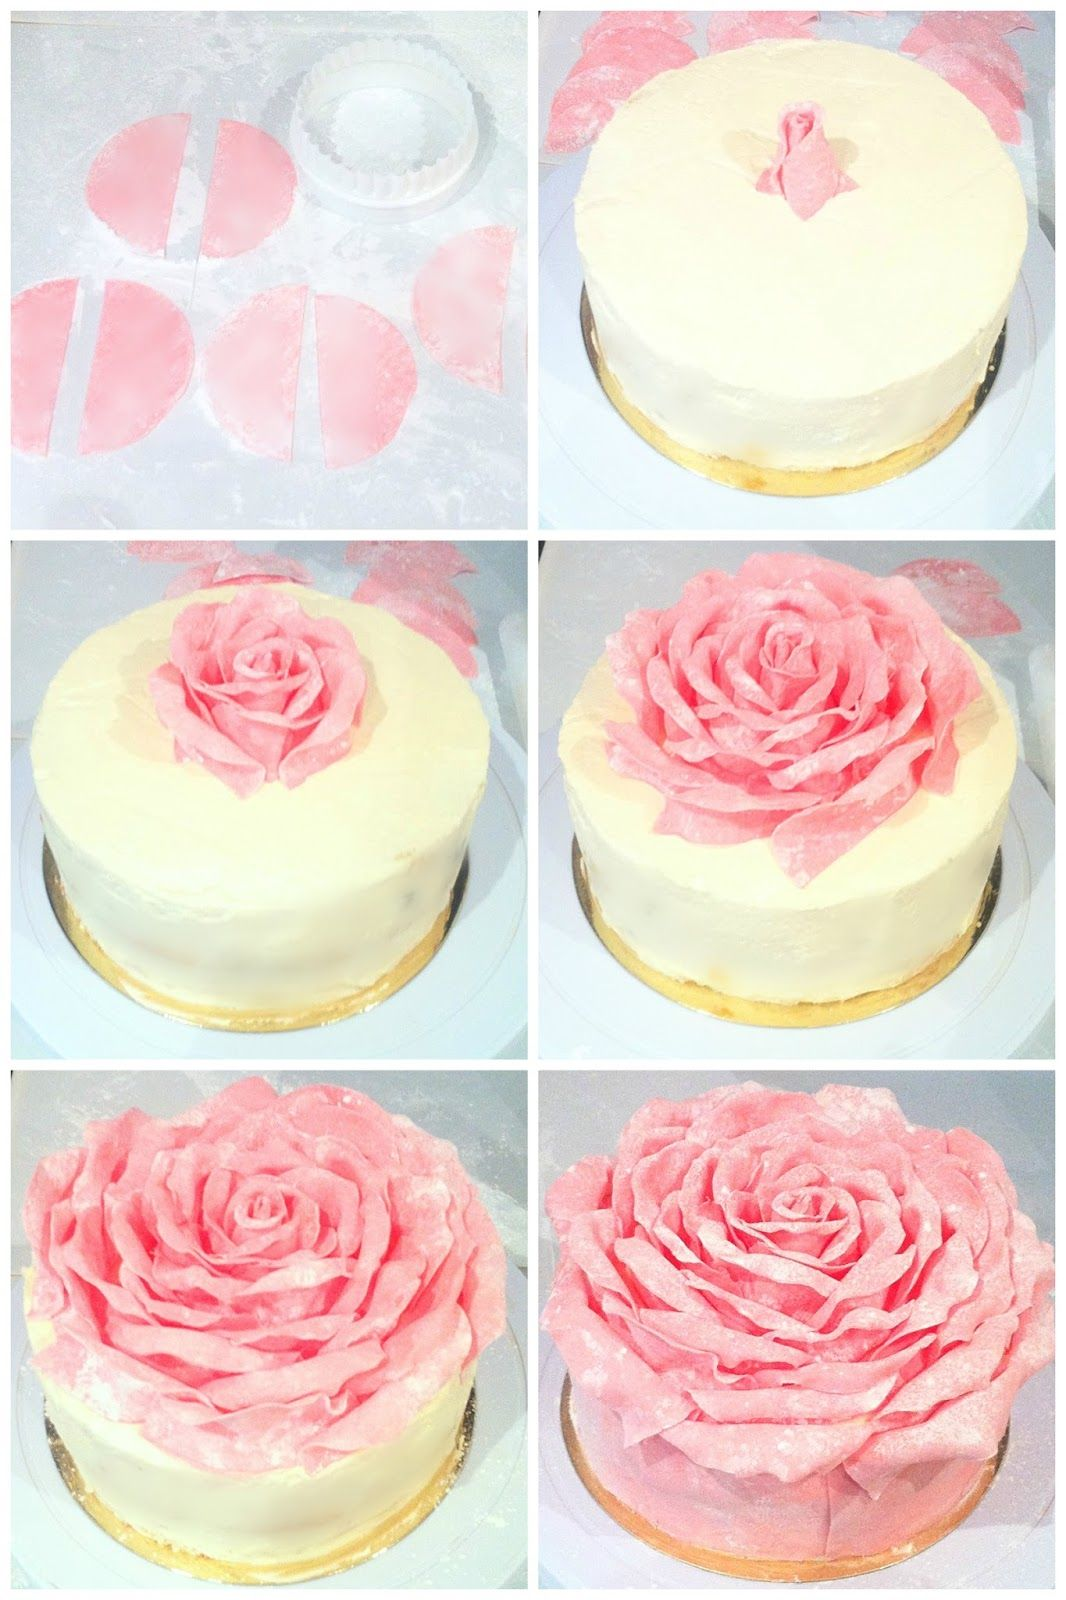 Cherie Kelly S Strawberry Chocolate Rose Petal Cake Icing On